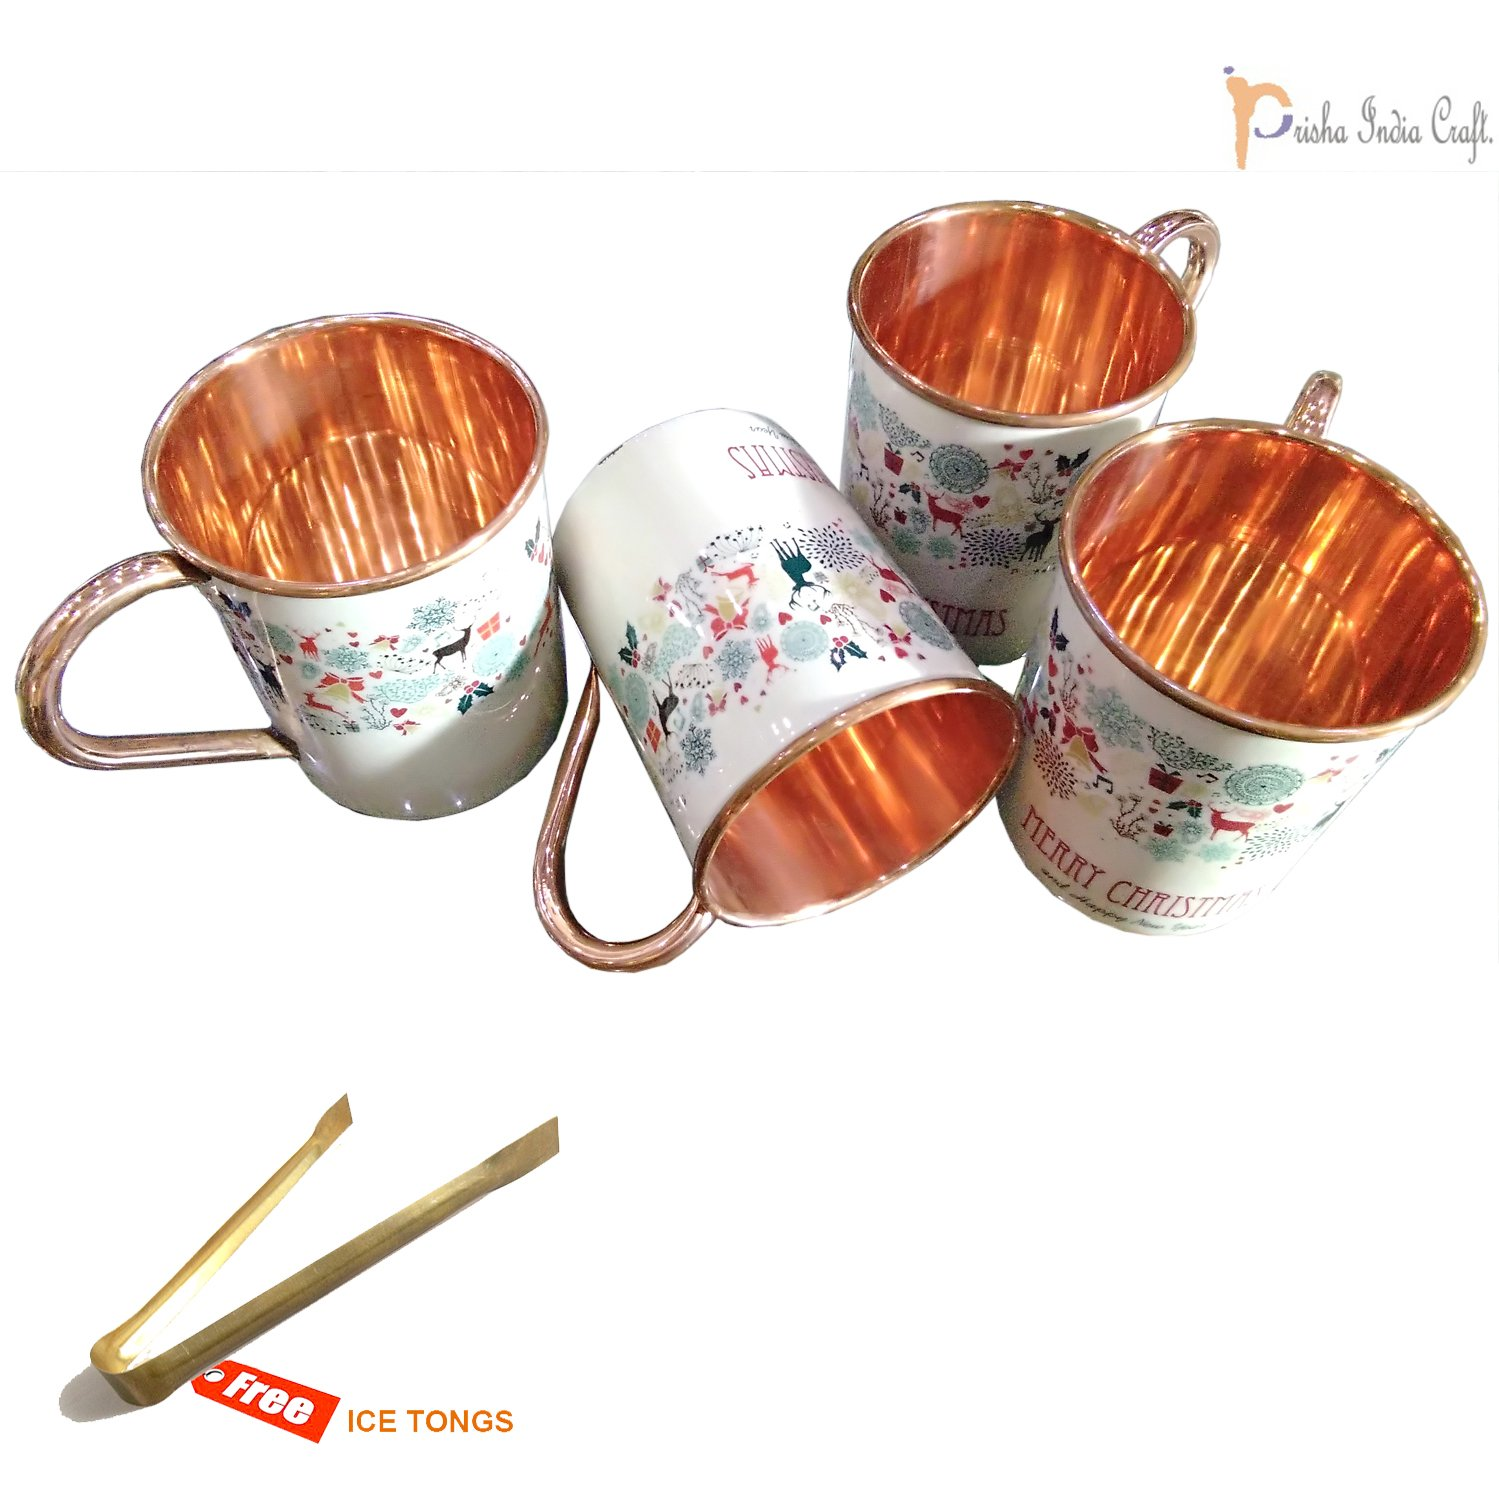 Prisha India Craft Marry Christmas Hand Painted Designer Copper Mugs Gift for Christmas, Pure Copper Moscow Mule Mugs | 17 Ounce | Set of 4